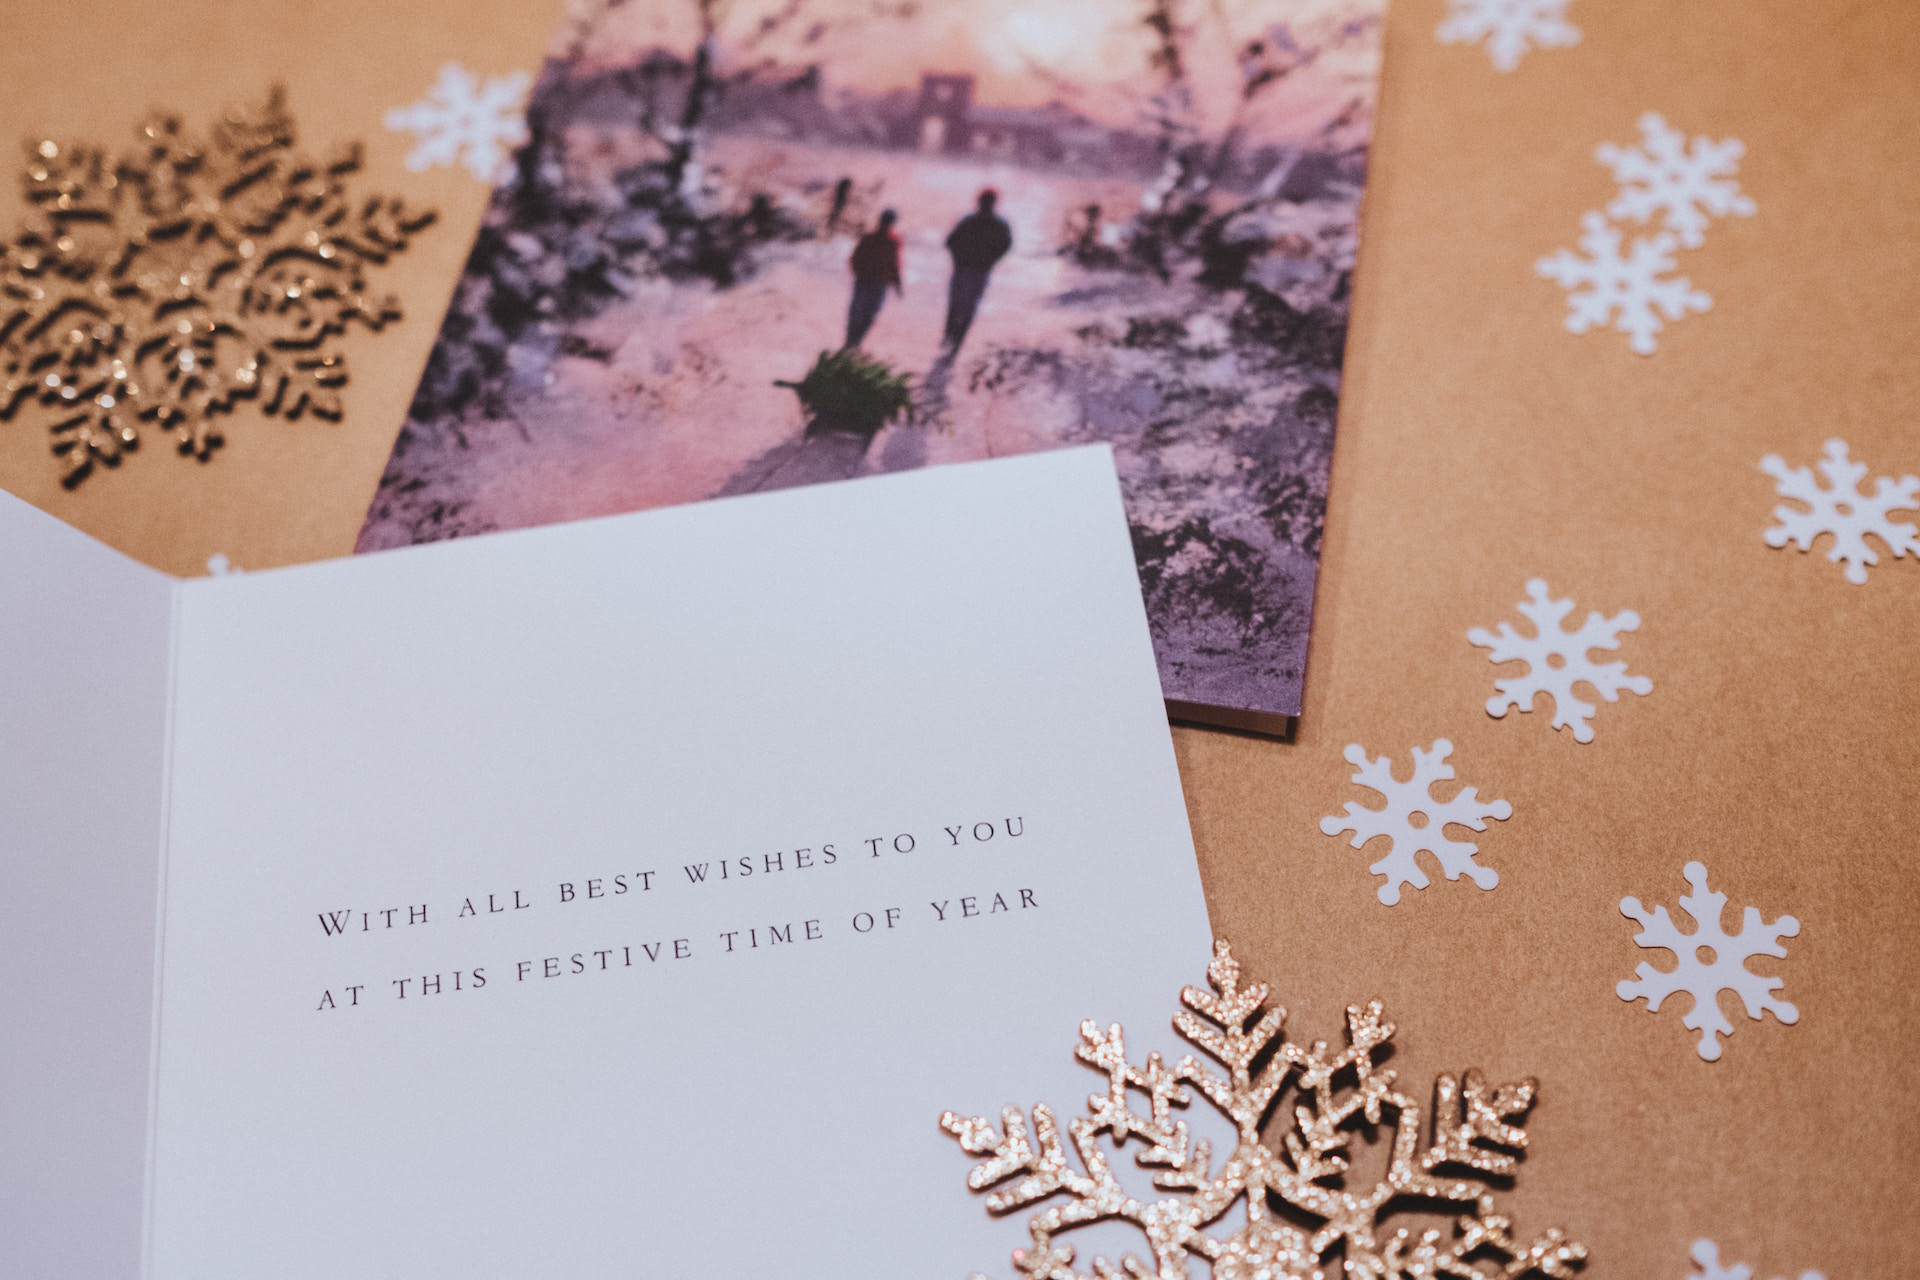 Writing the dreaded Christmas card letter